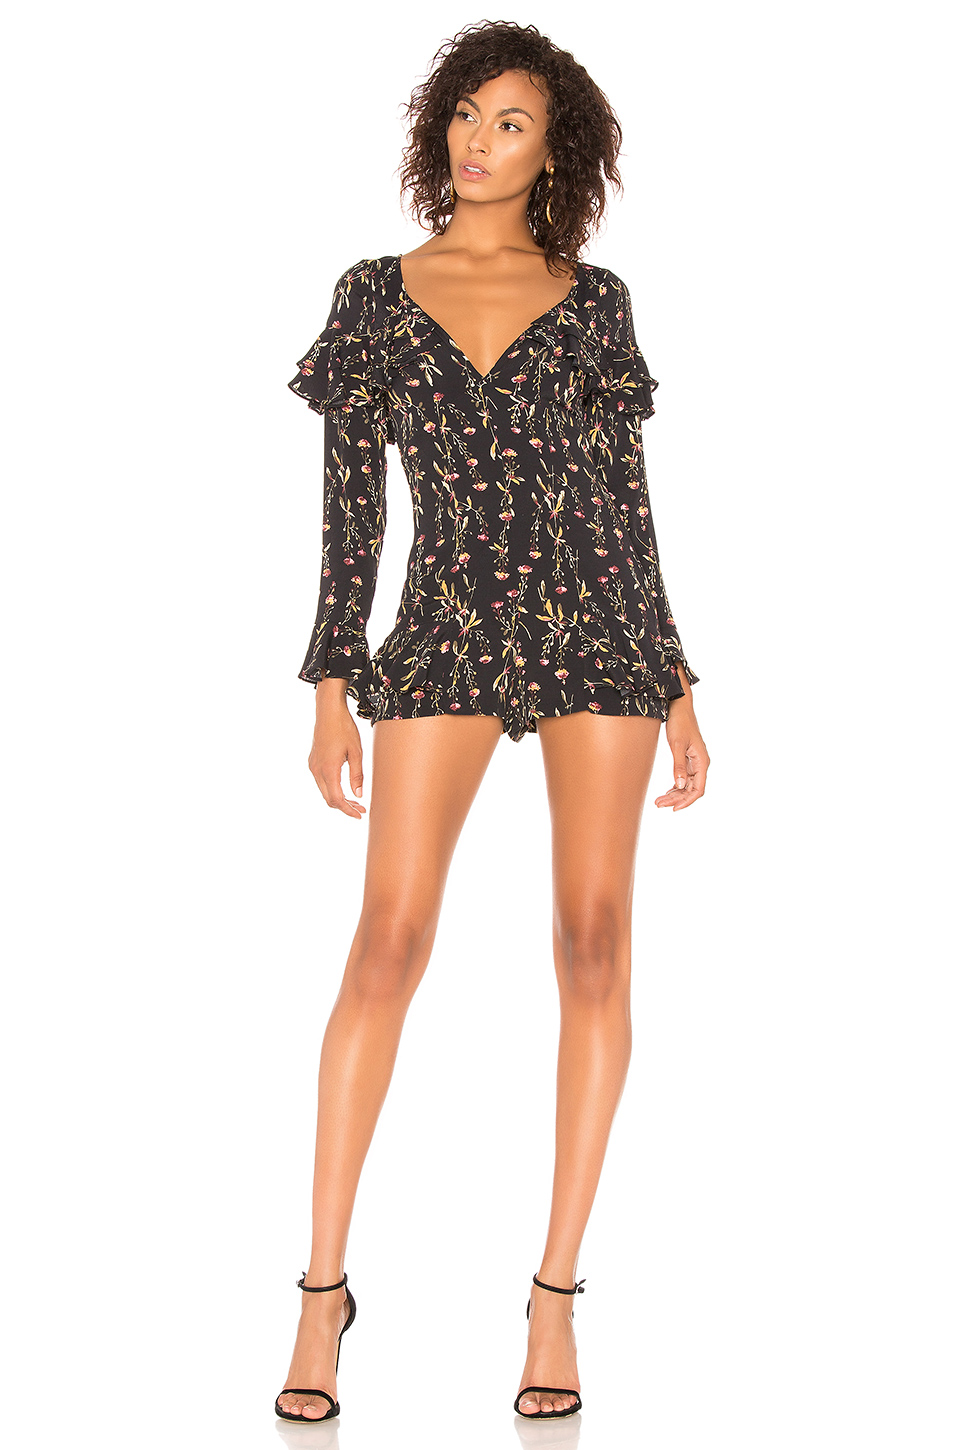 bbbfb98bc2da2 Buy Original LIKELY Amira Romper at Indonesia